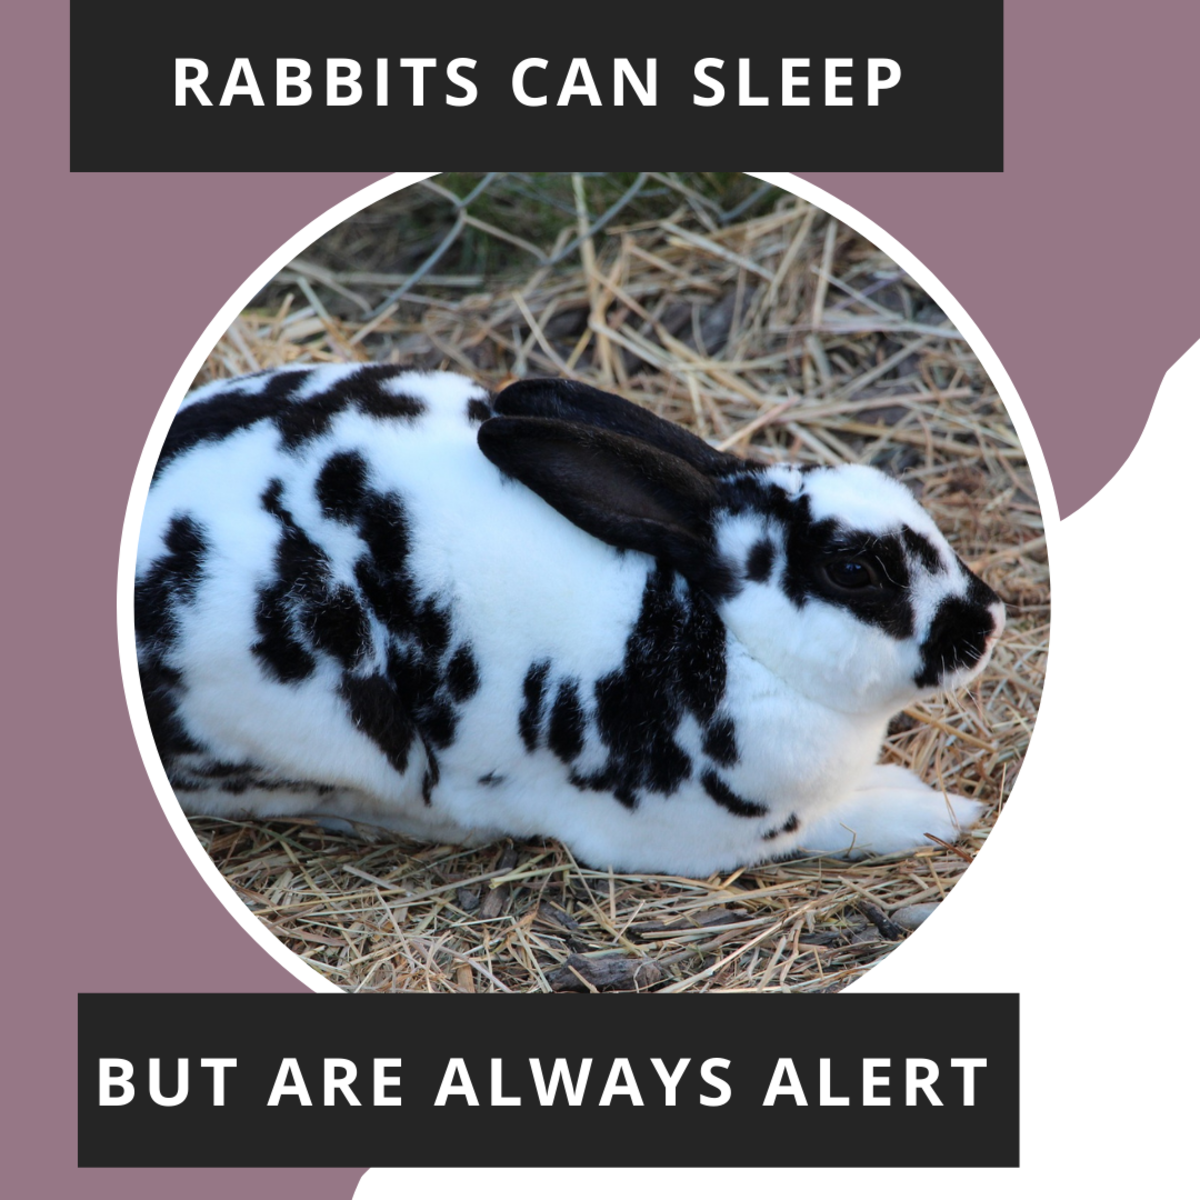 Rabbits can sleep but will always wake up if they hear noises.